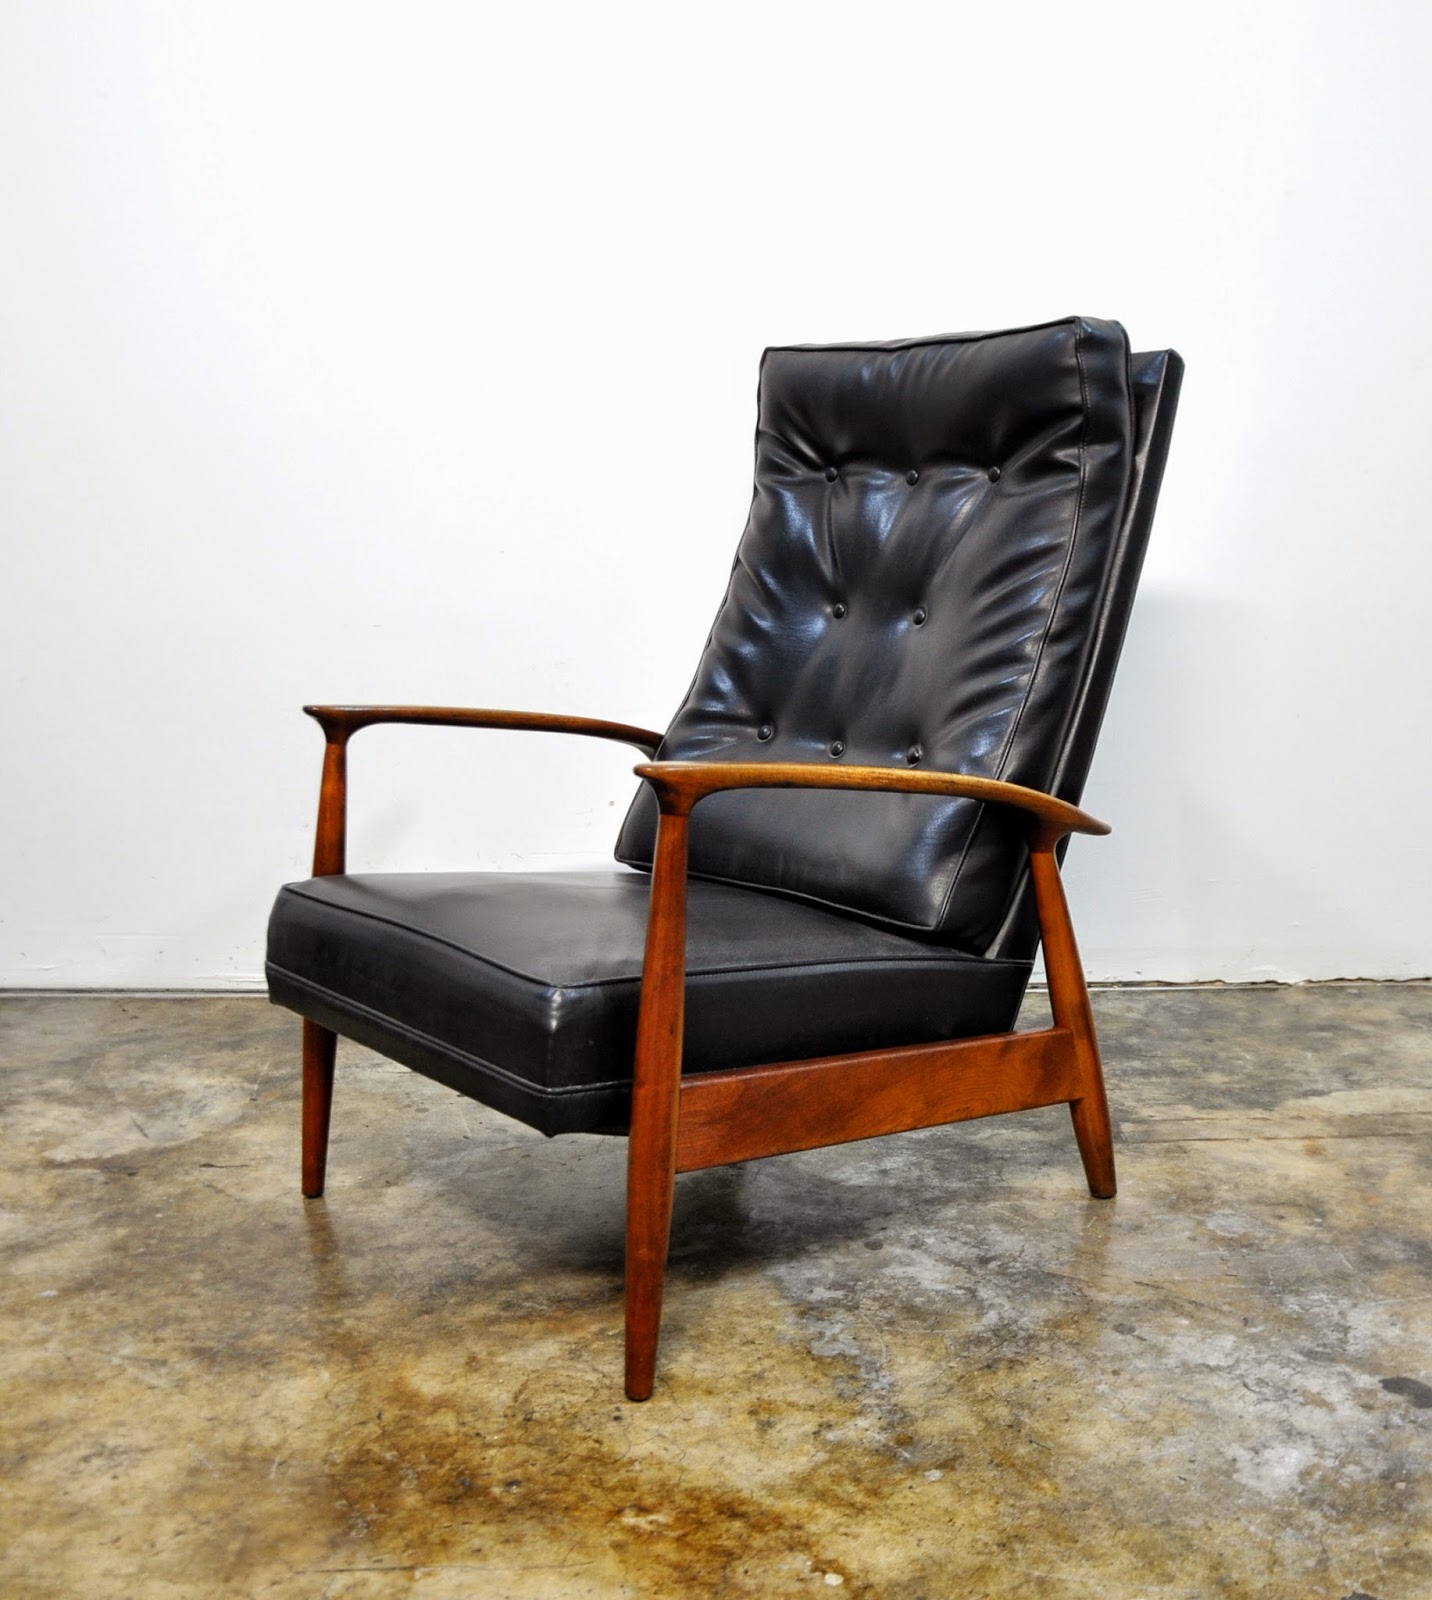 Milo Baughman for Thayer Coggin Inc. Recliner Lounge Chair : baughman recliner - islam-shia.org